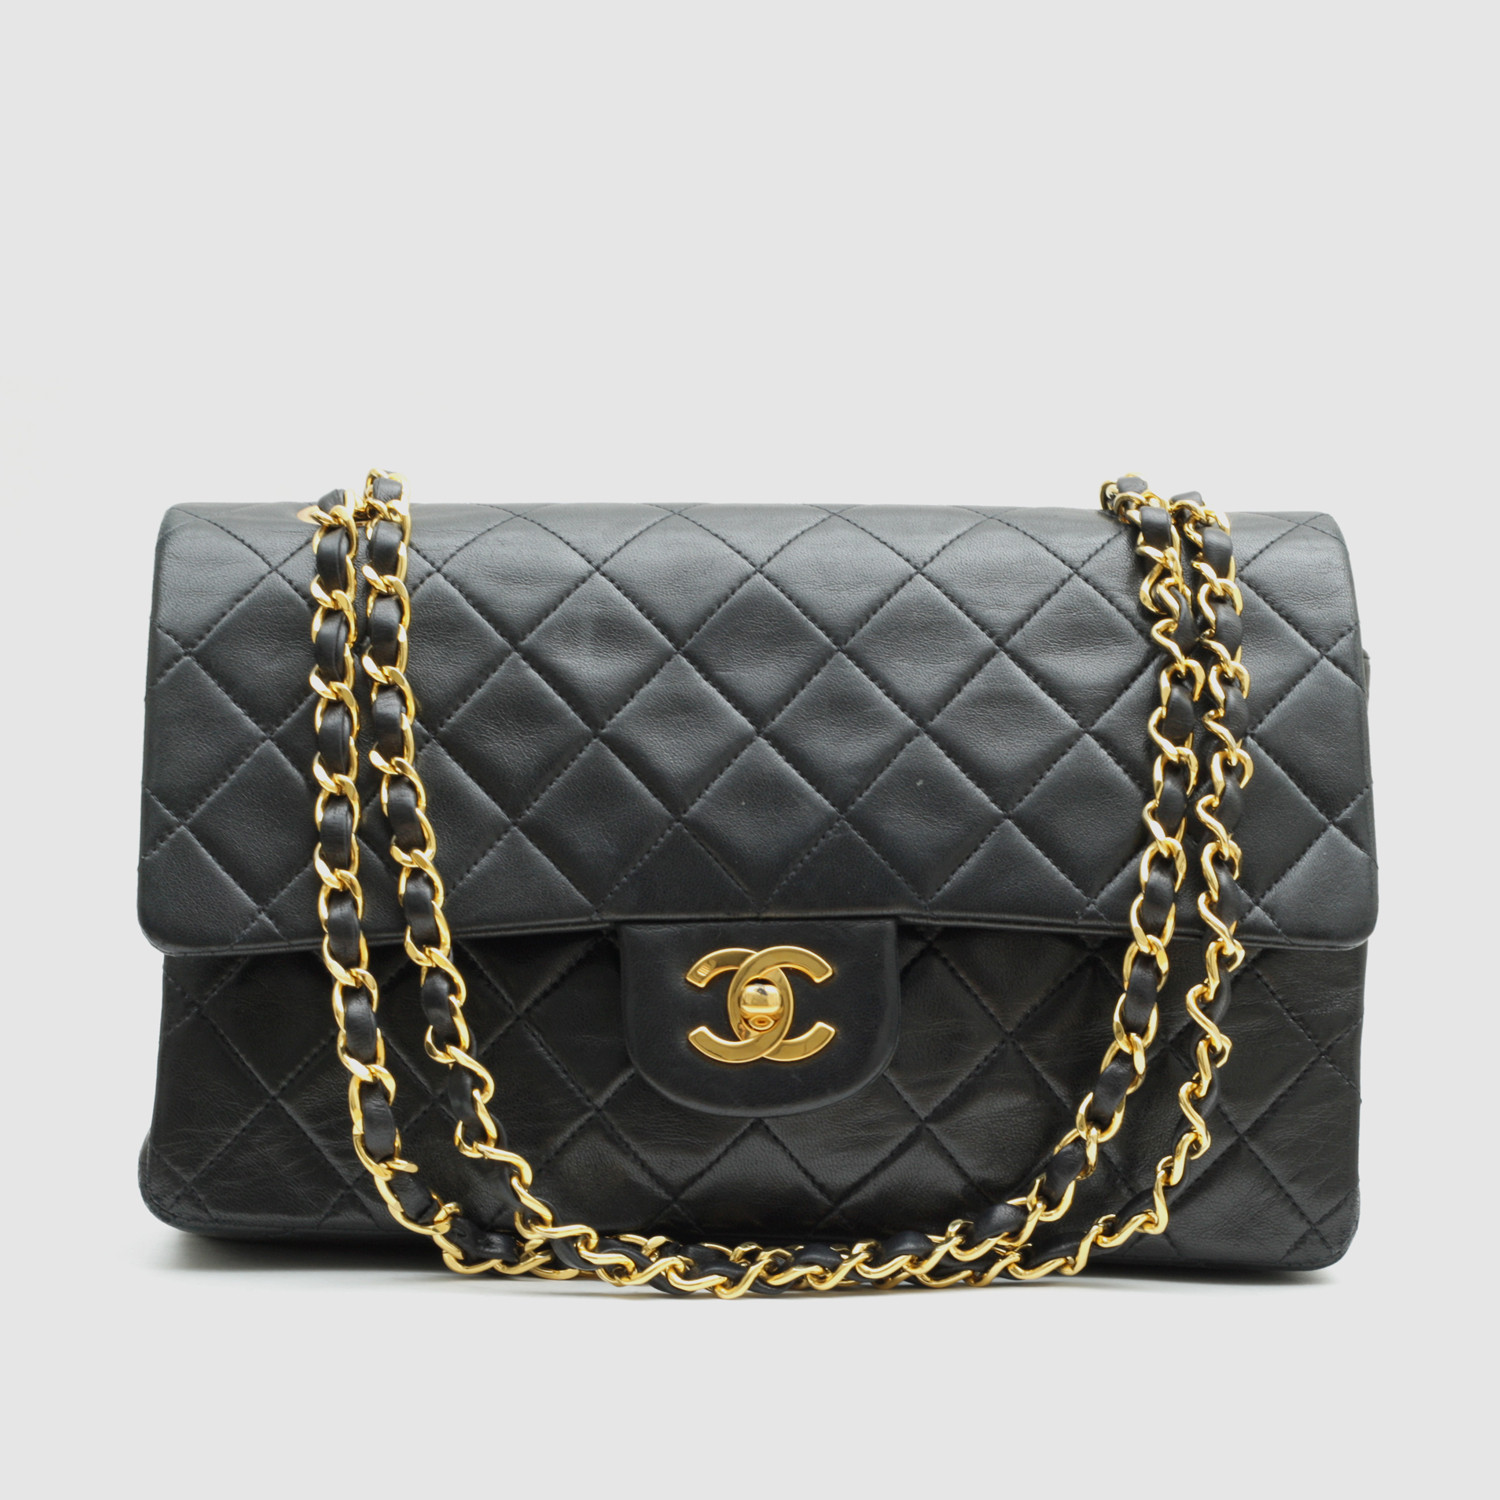 4069bde78570 Vintage Chanel Small Flap Bag    Black Quilted Lambskin    CHAN21 ...